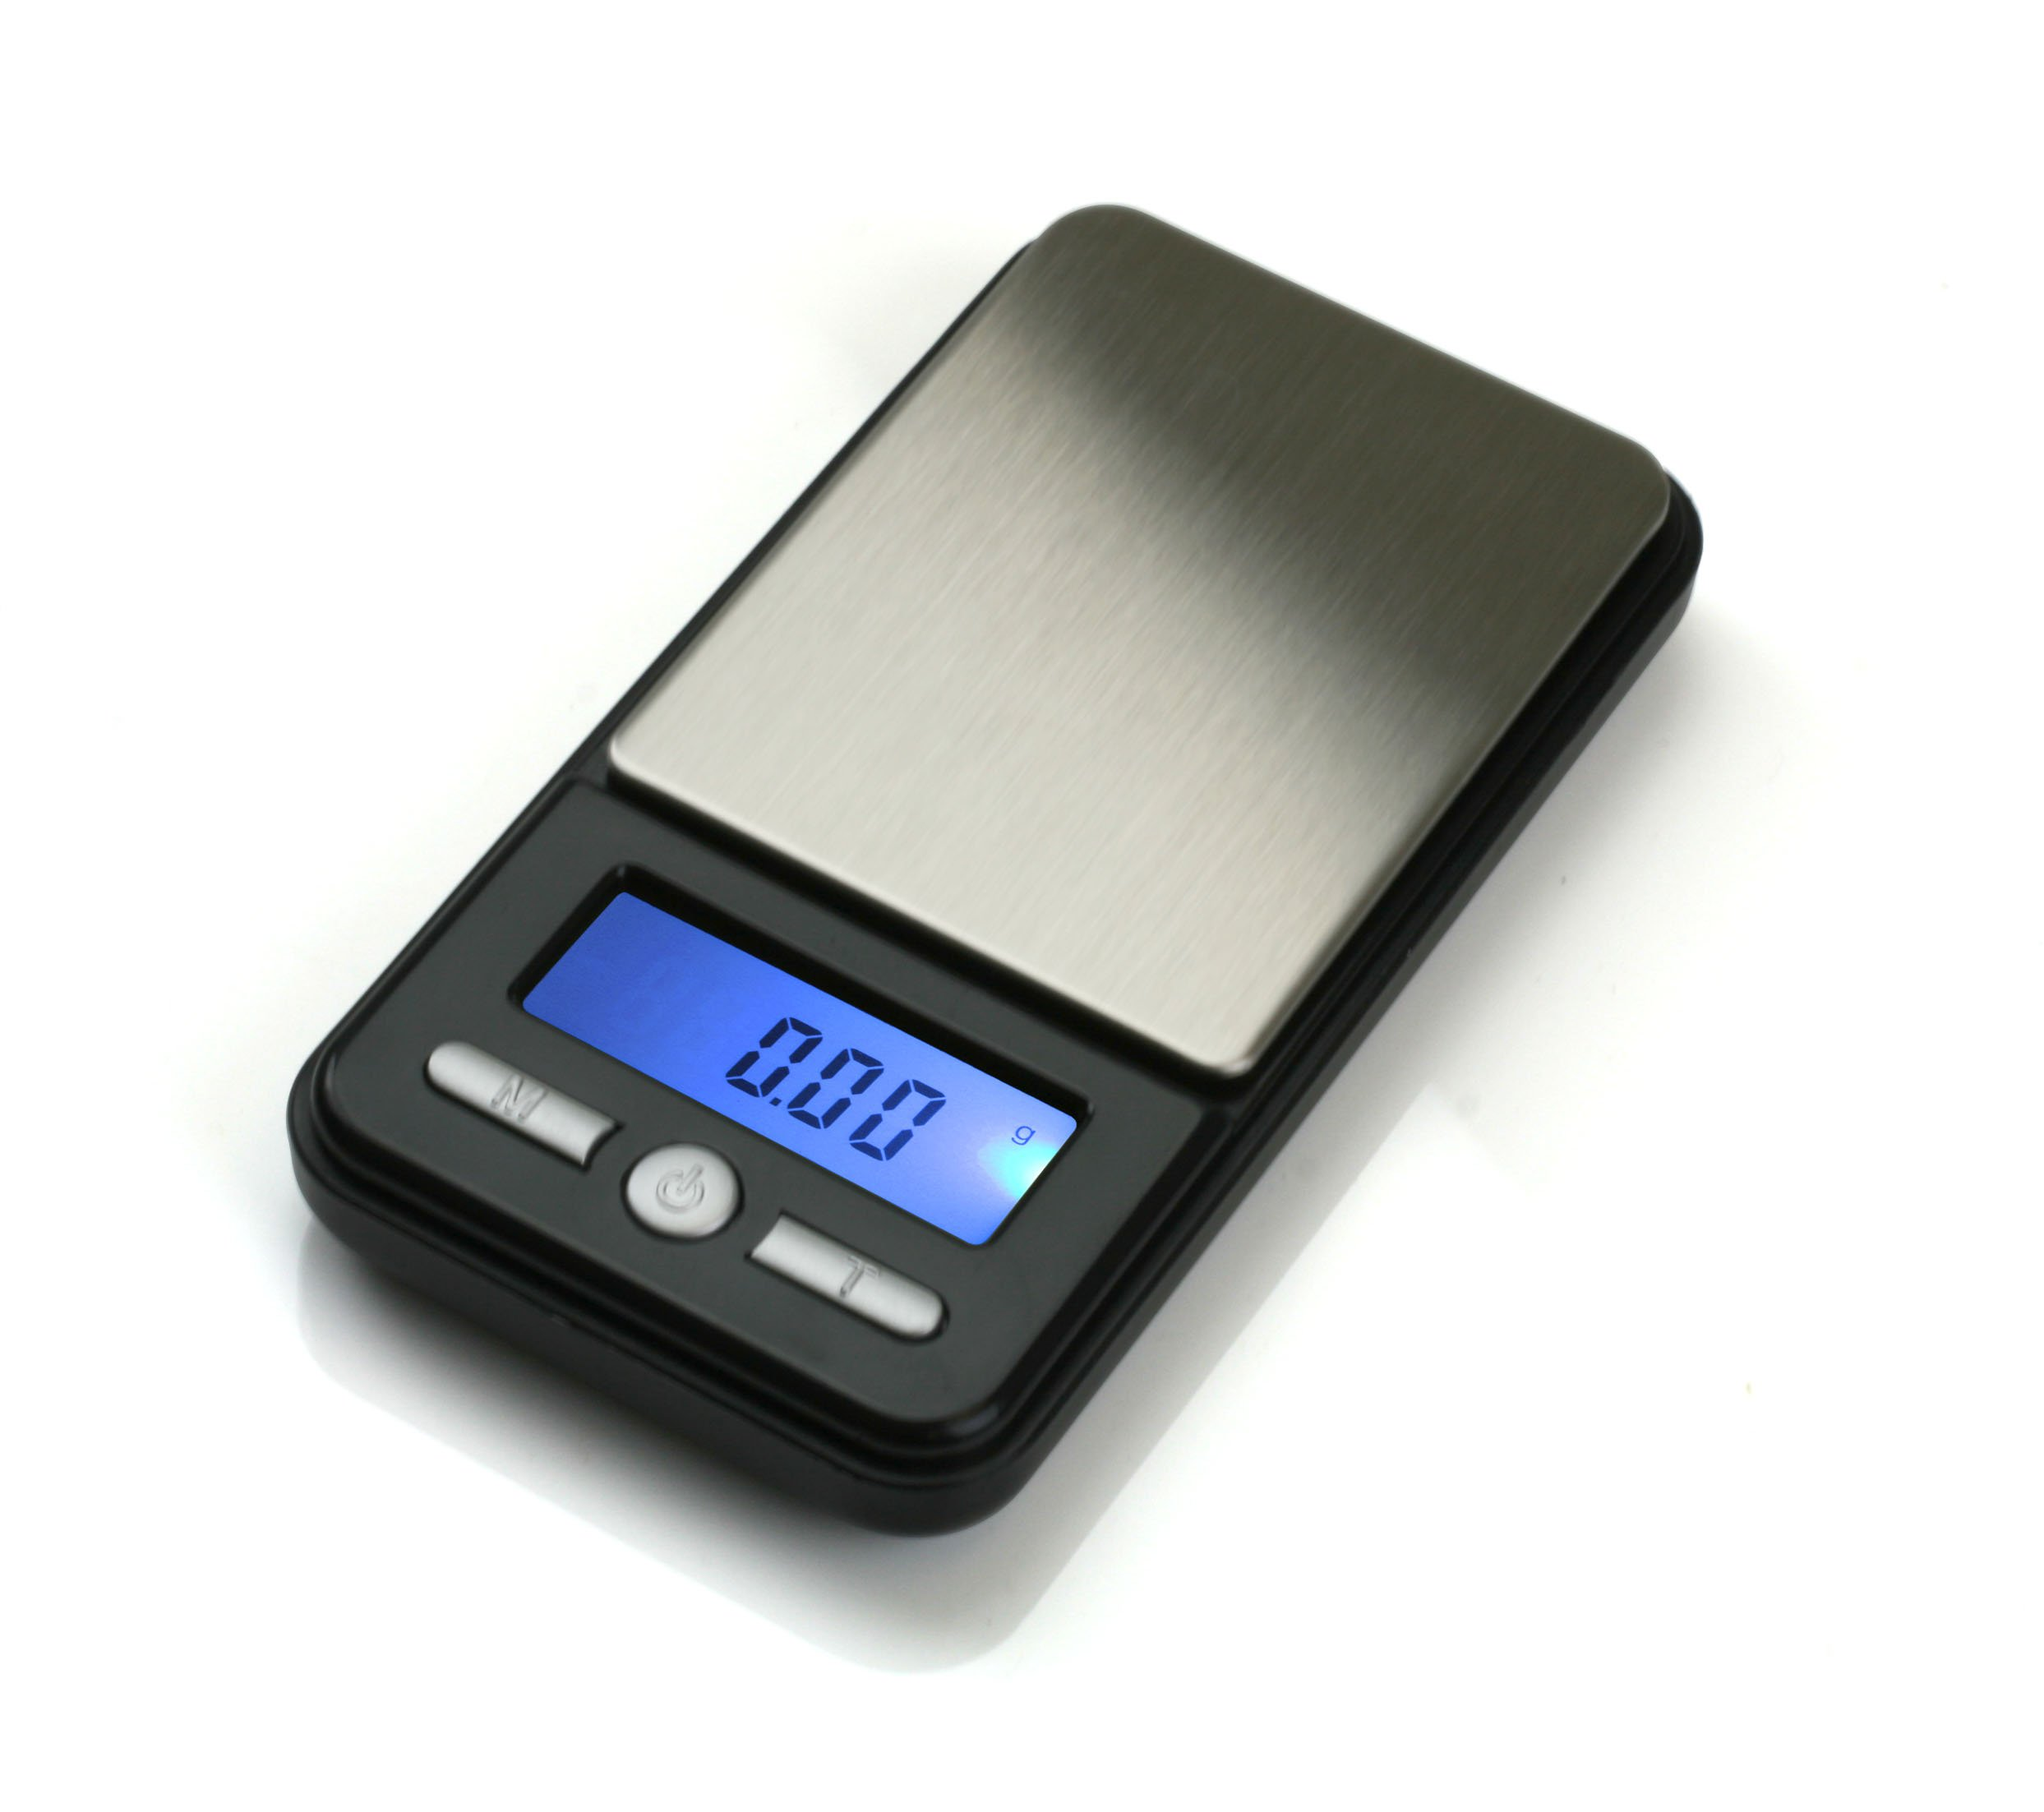 American Weigh Scales AC Series Digital Pocket Weight Scale, Black, 100g x 0.01g (AC-100) by American Weigh Scale